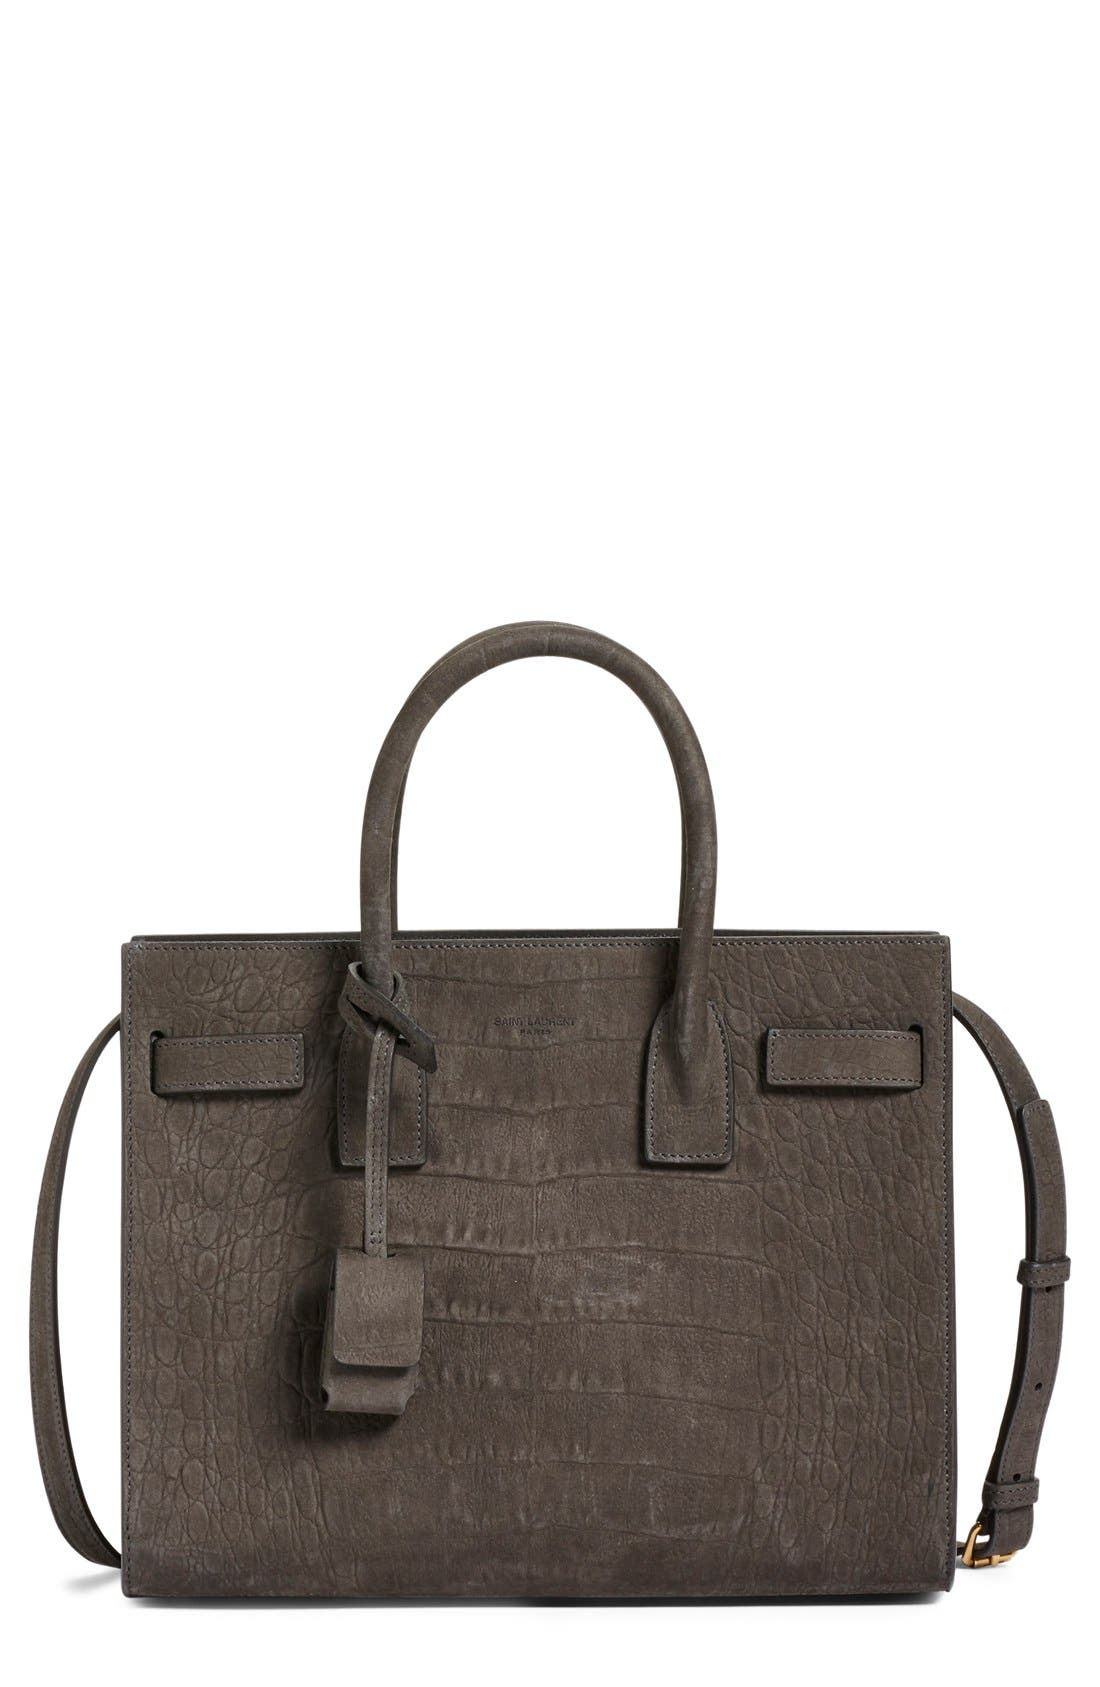 'Baby Sac de Jour' Croc Embossed Leather Tote,                             Main thumbnail 1, color,                             022